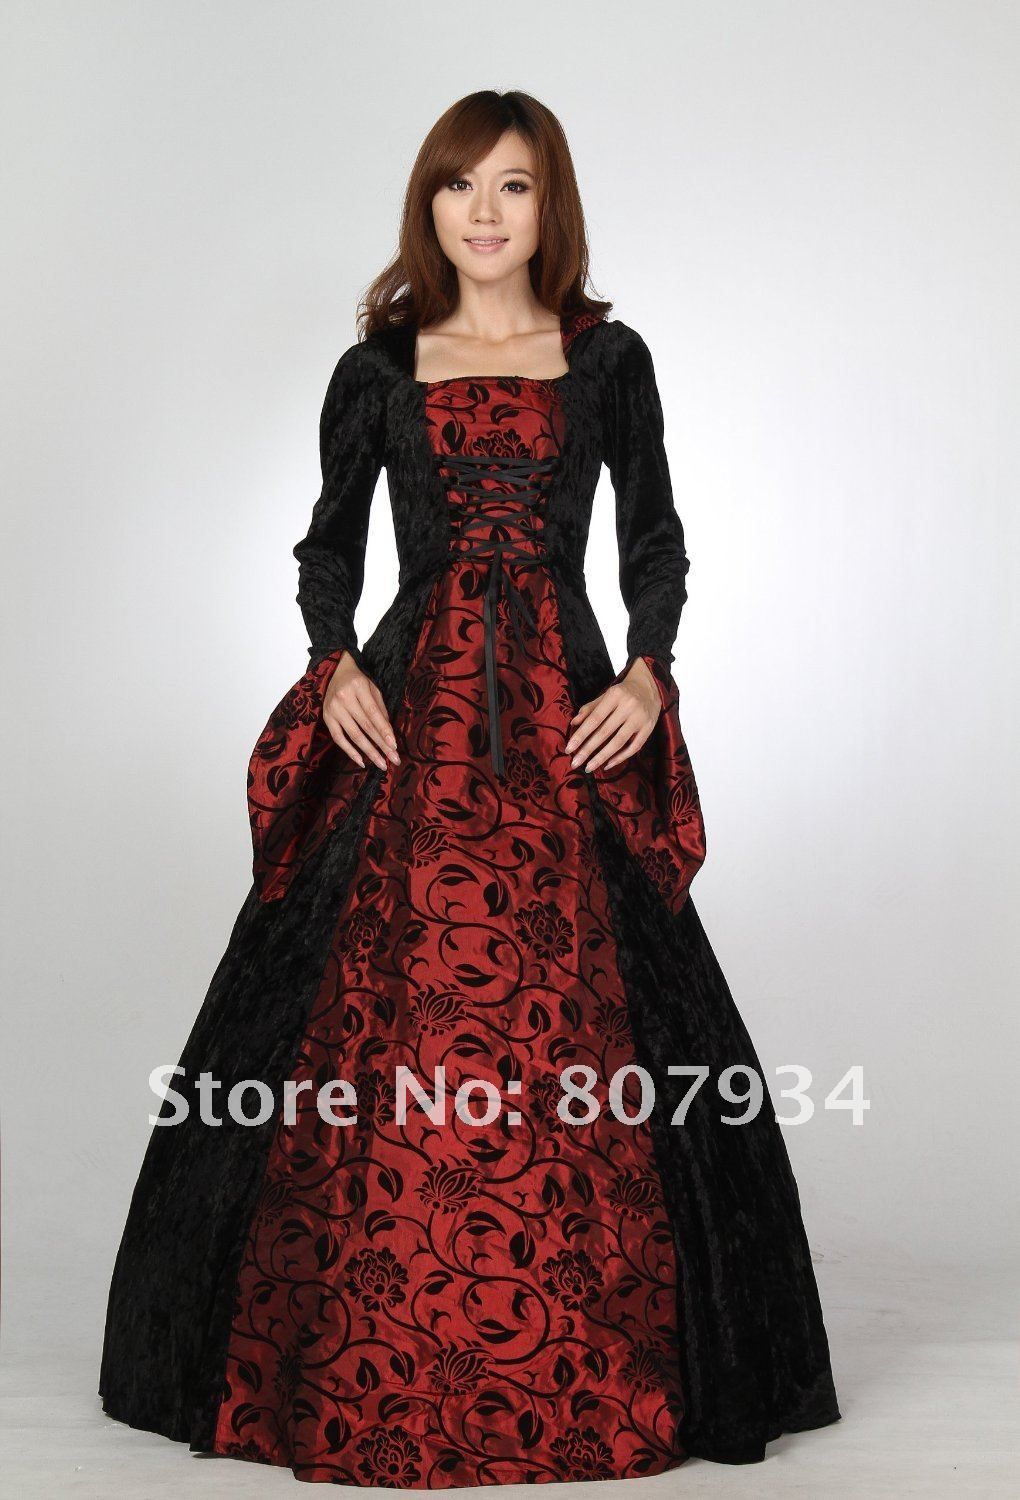 Gown Cotton Quality Dress Tropical Directly From China Gowns Suppliers Meval Renaissance Velvet Evening Hooded Ball Prom